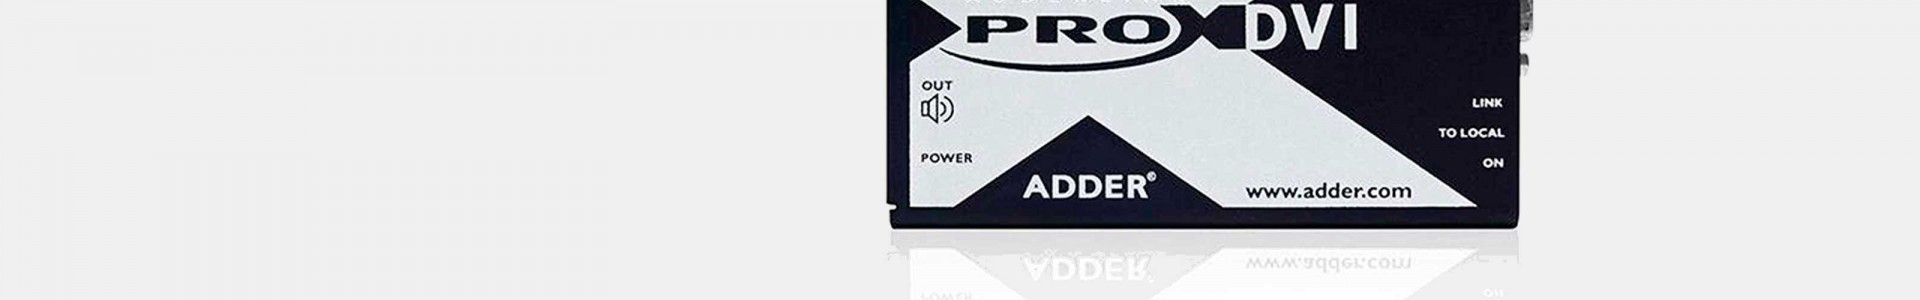 KVM Adder at Avacab - All Adder products at the best price